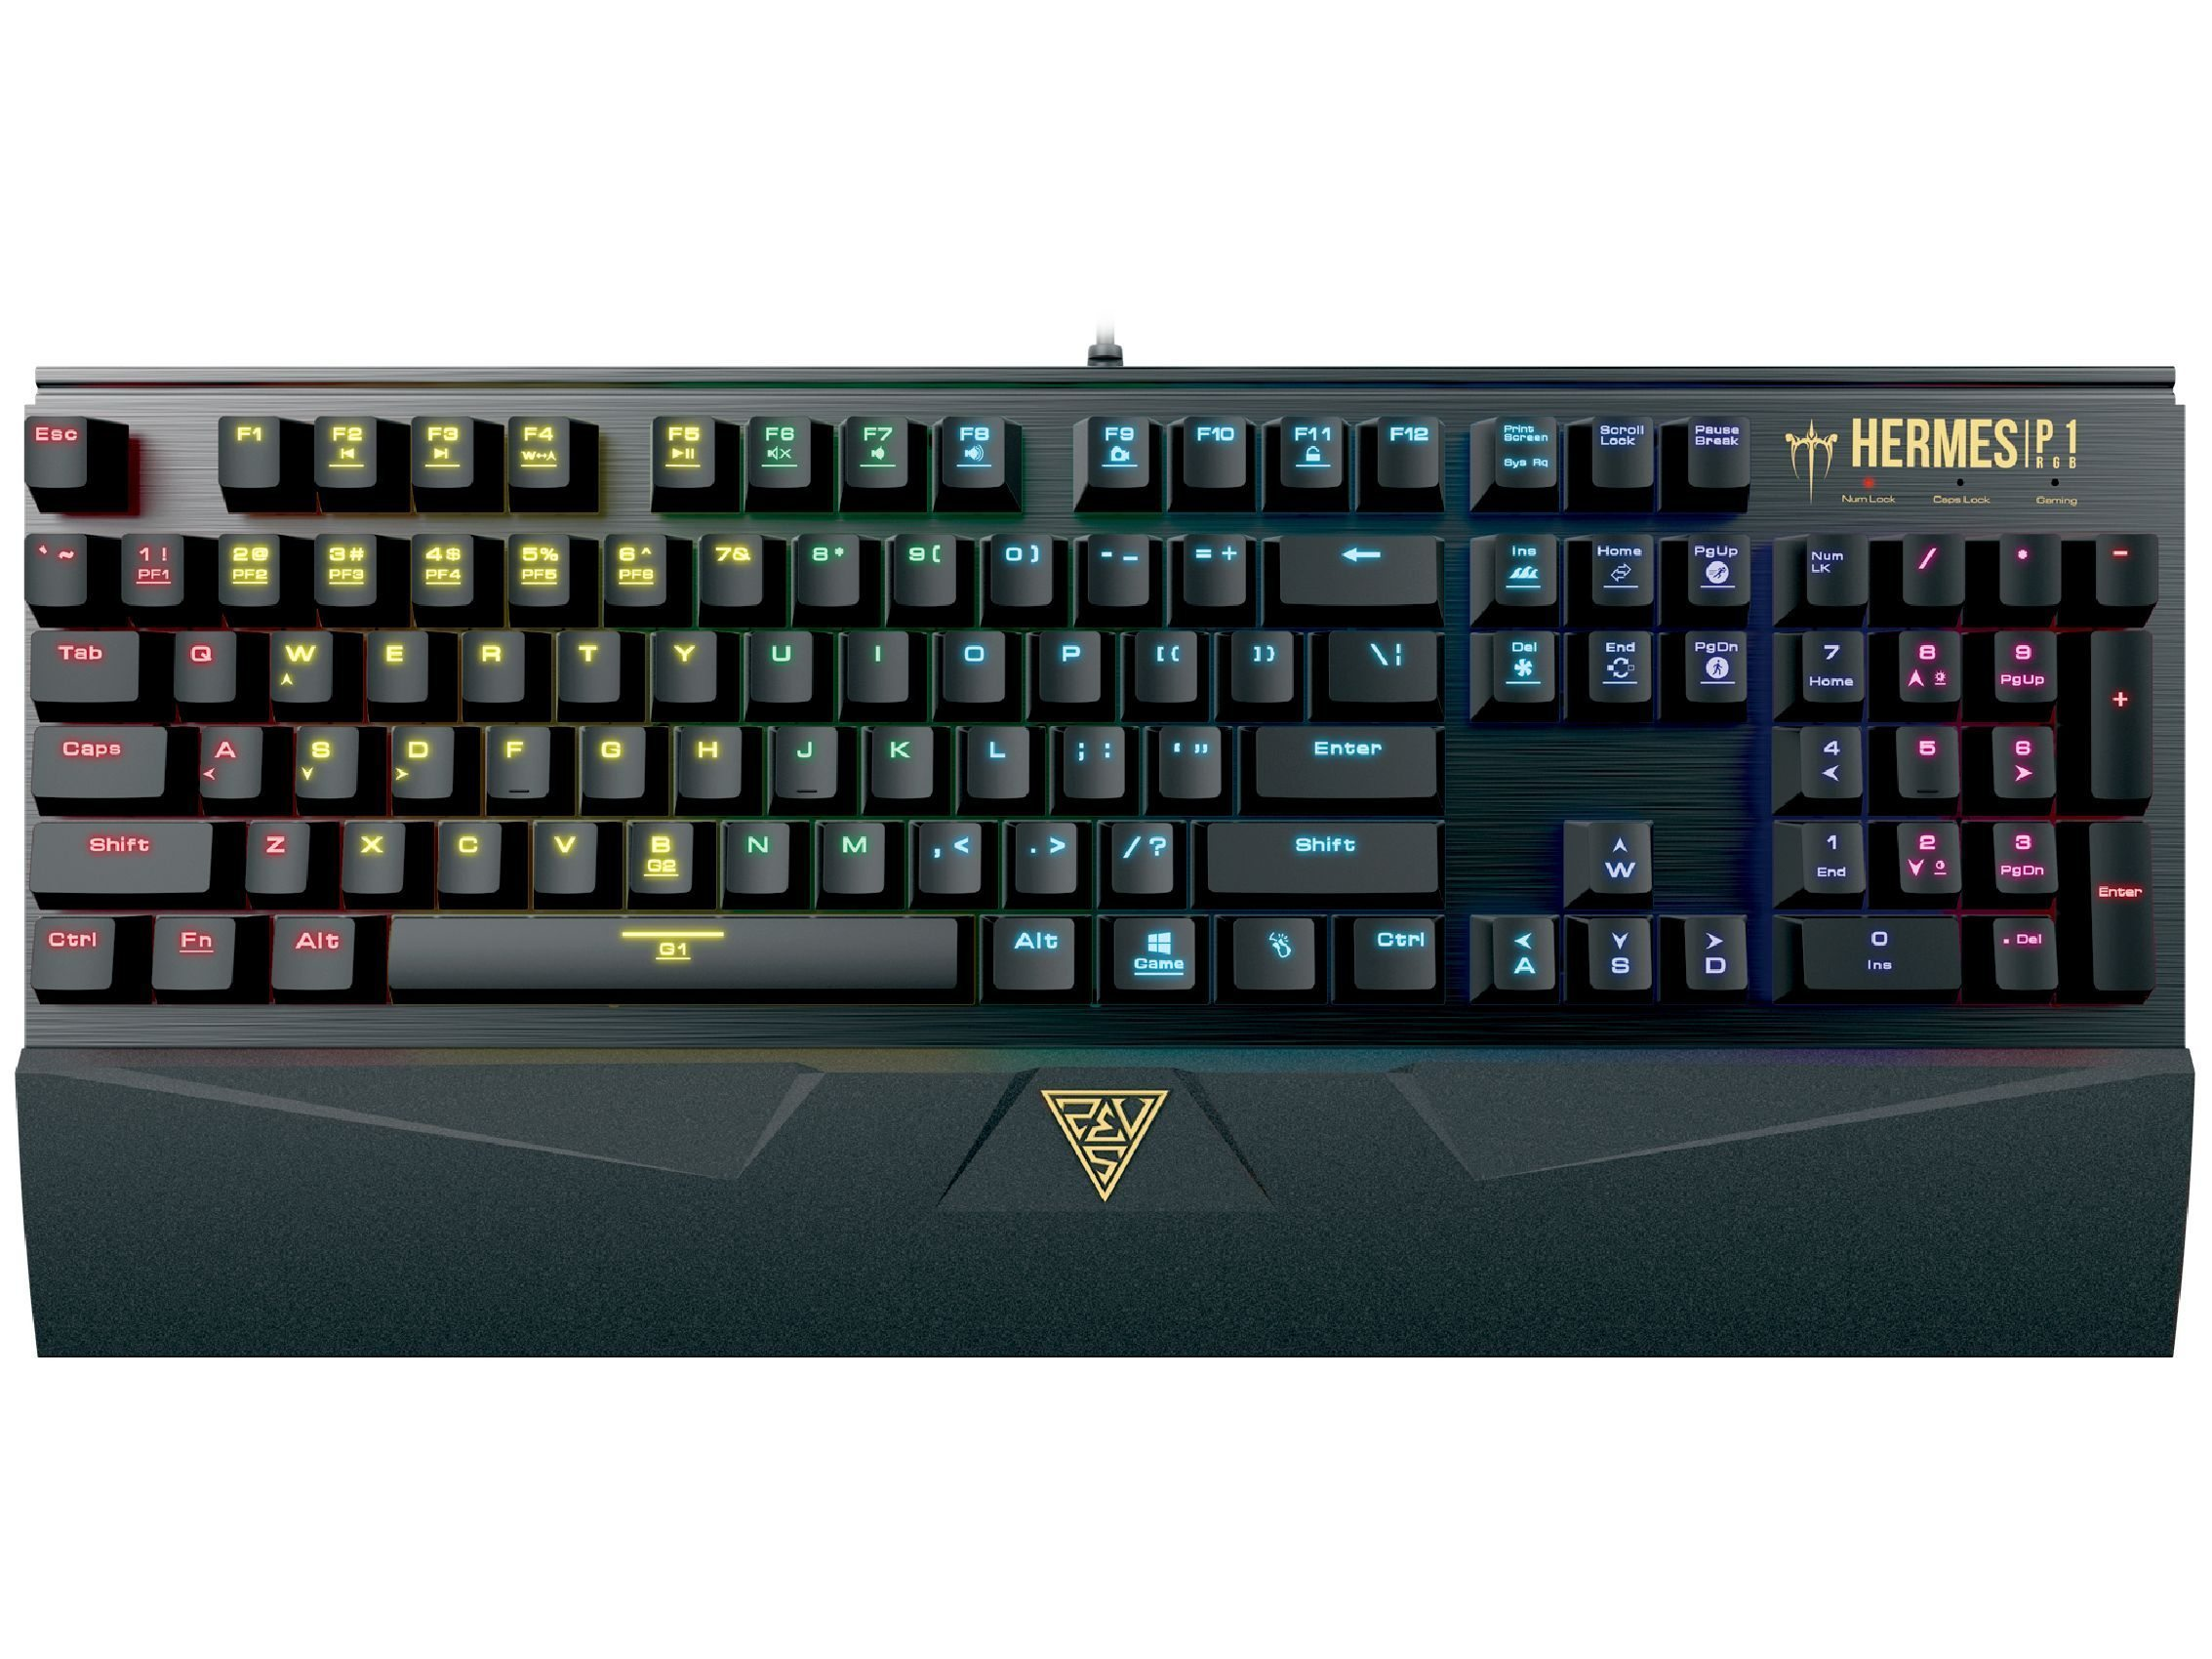 Gaming Keyboard Mechanical 104 keys - HERMES P1 RGB